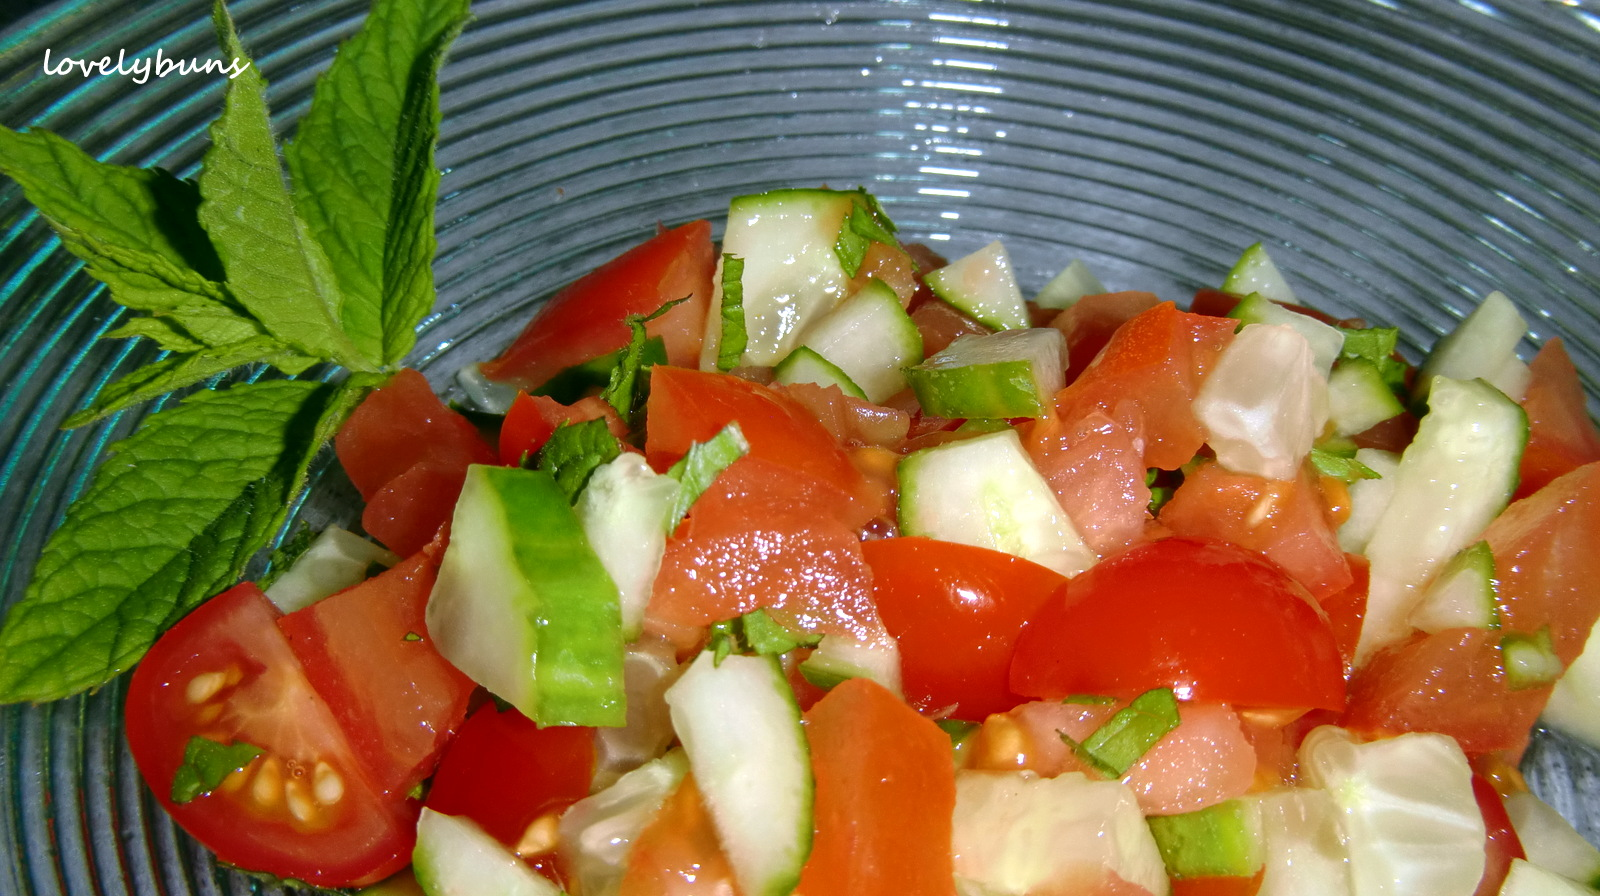 tomato,cucumber and mint side salad~ | ~~~ lovely buns ~~~